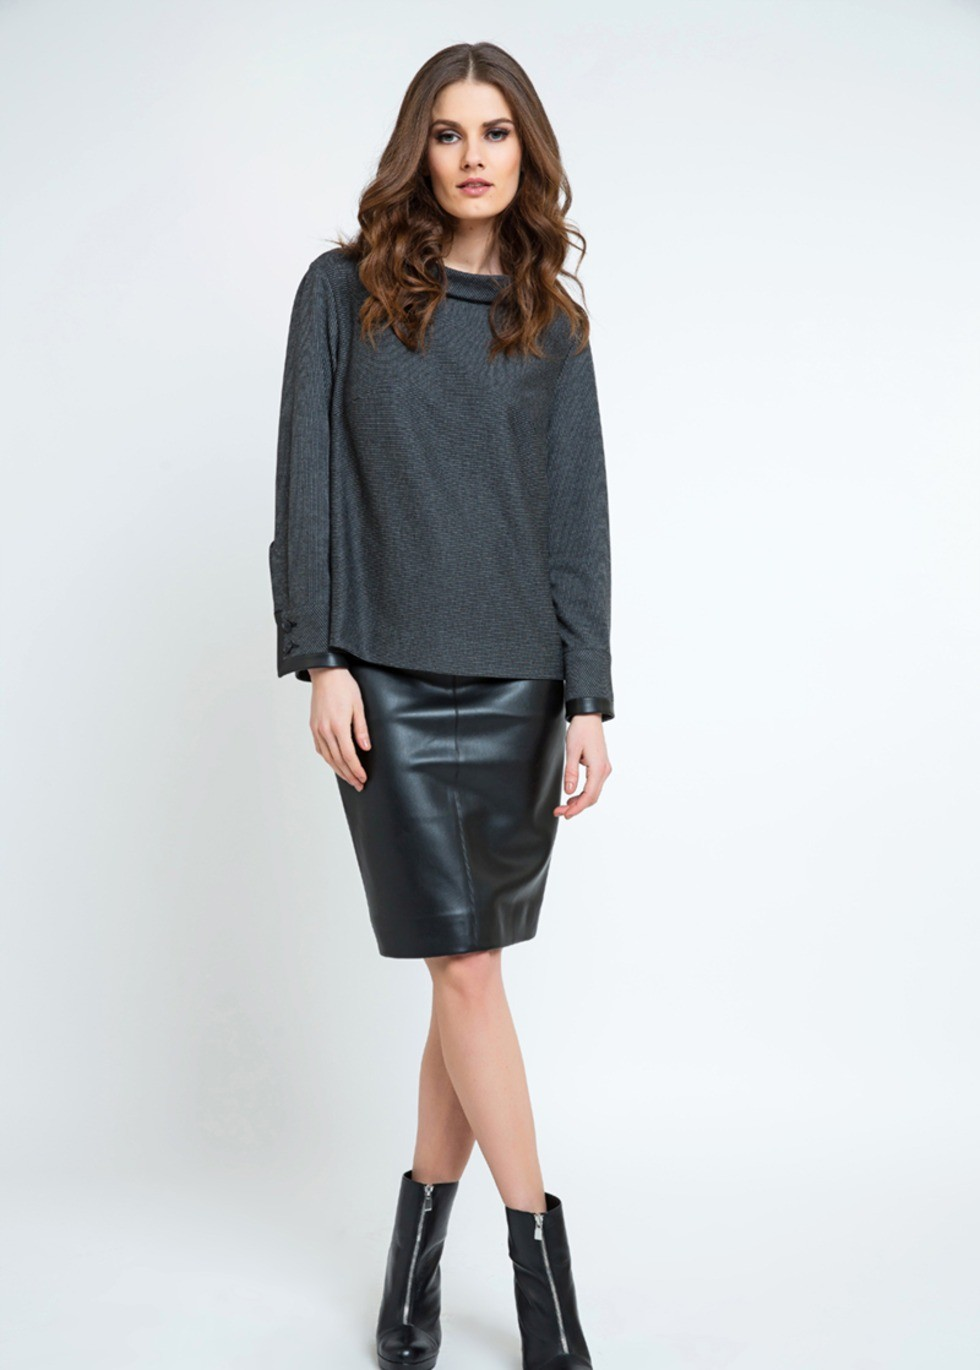 Pleather Pencil Skirt | ModLi